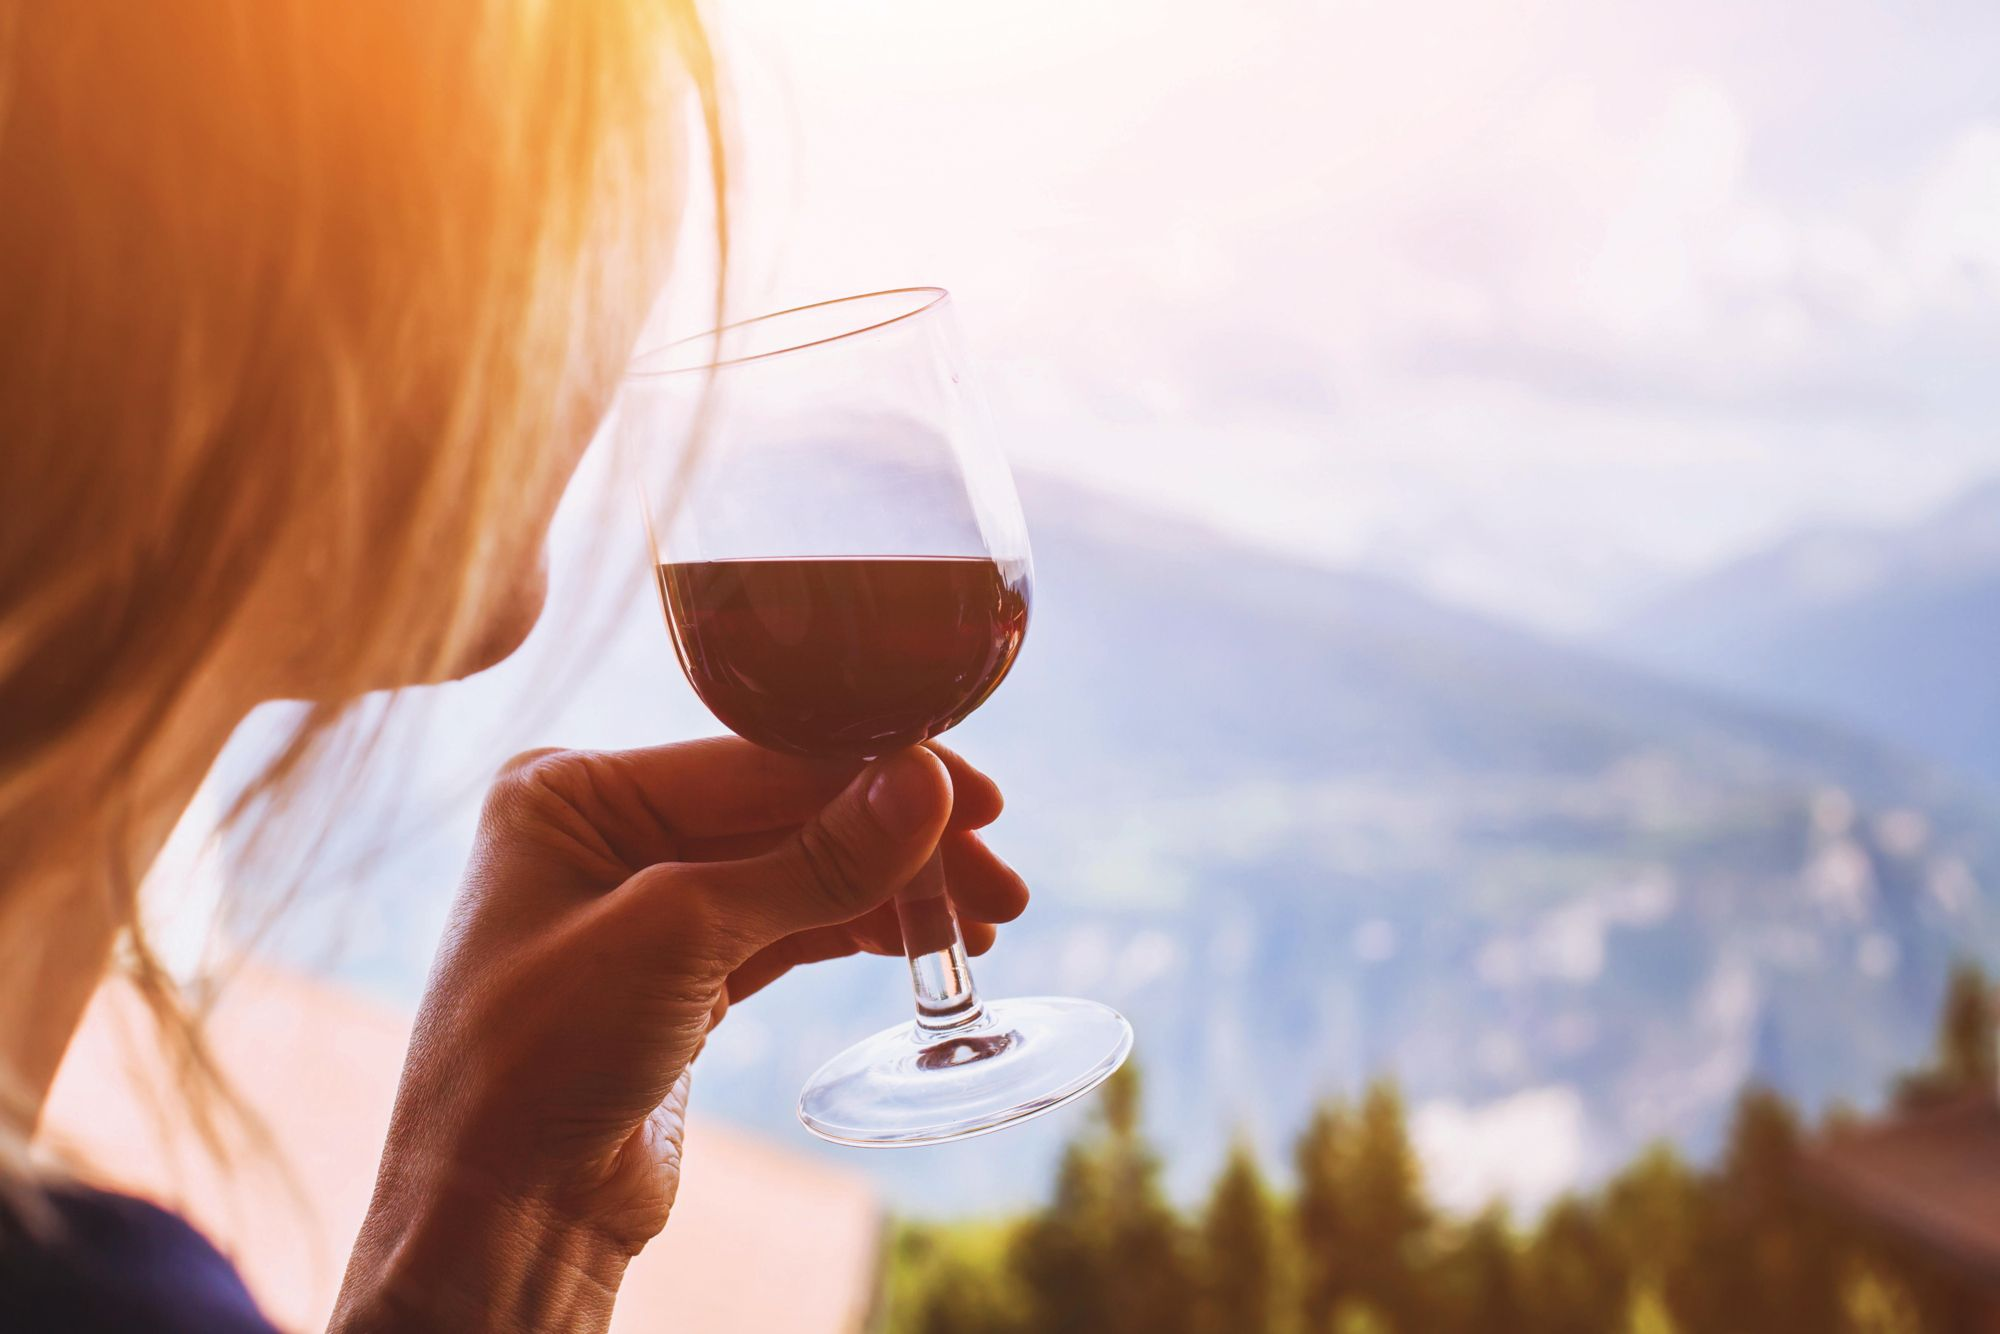 The Most Influential Female Wine Experts In Asia—Plus Their Top Wine Recommendations